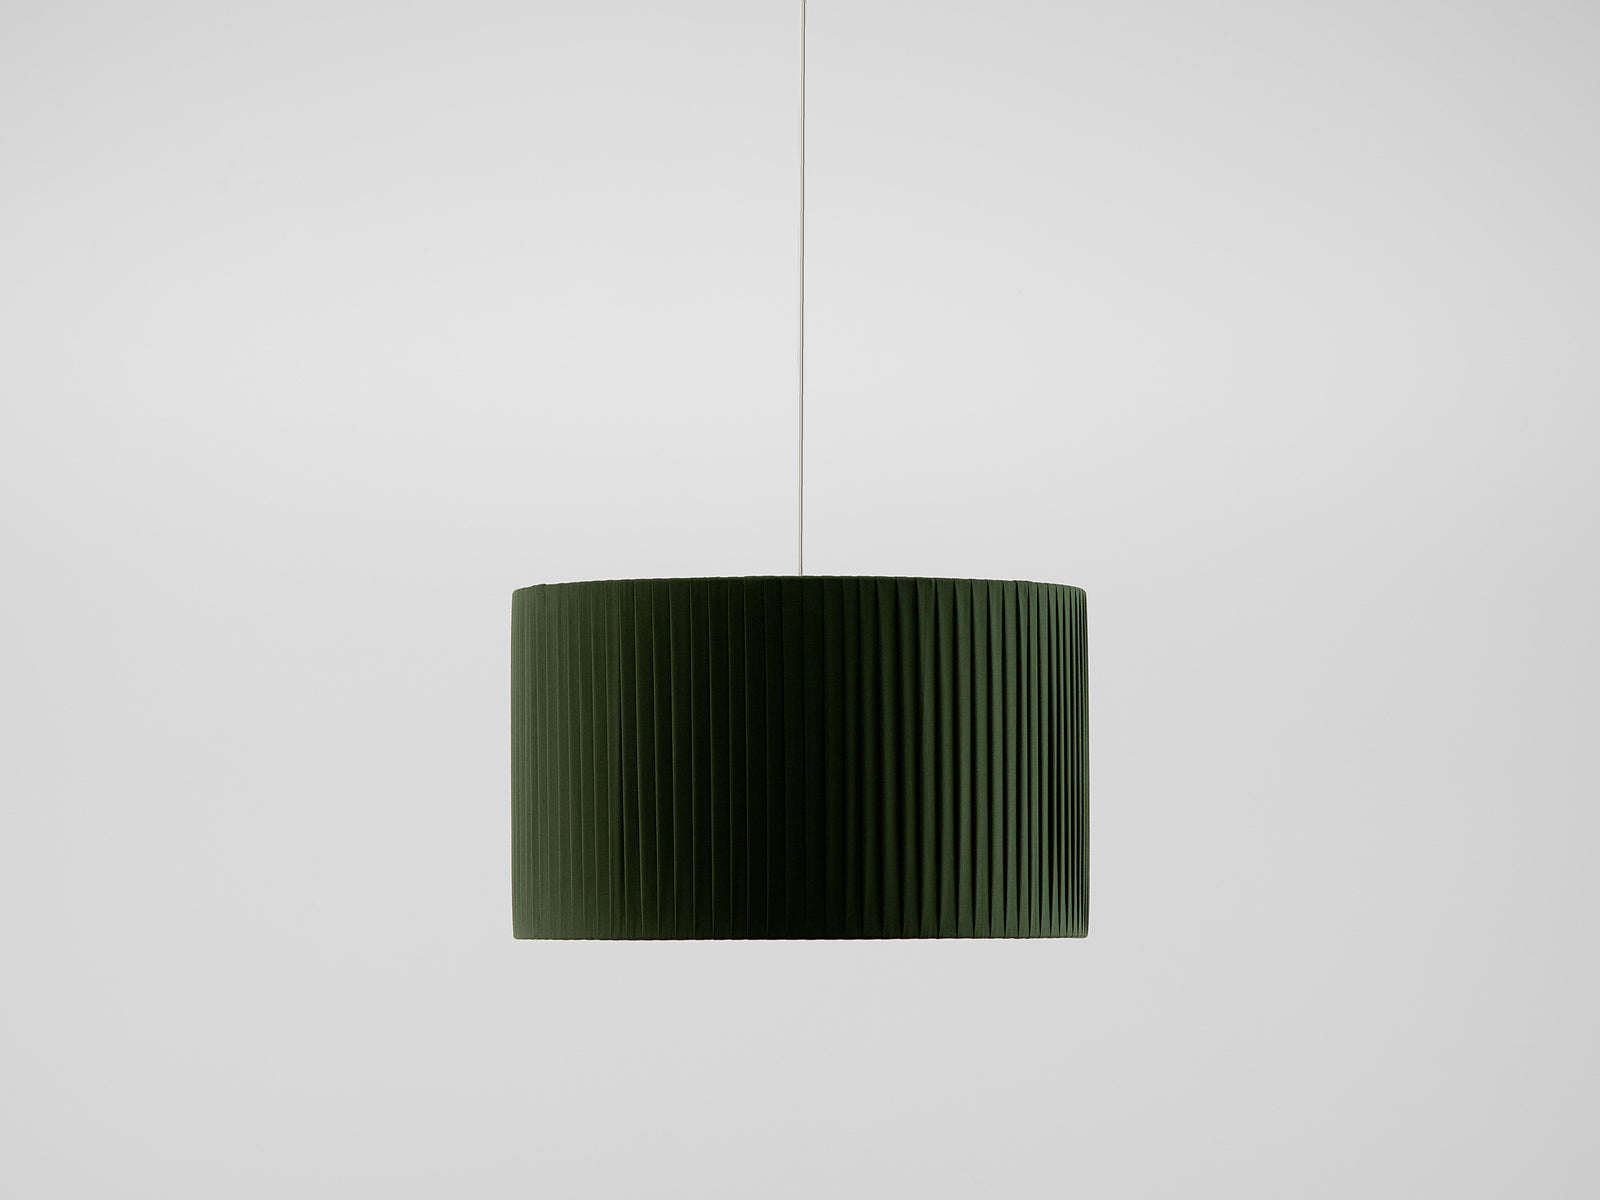 Pleated shade large olive | off | houseof.com